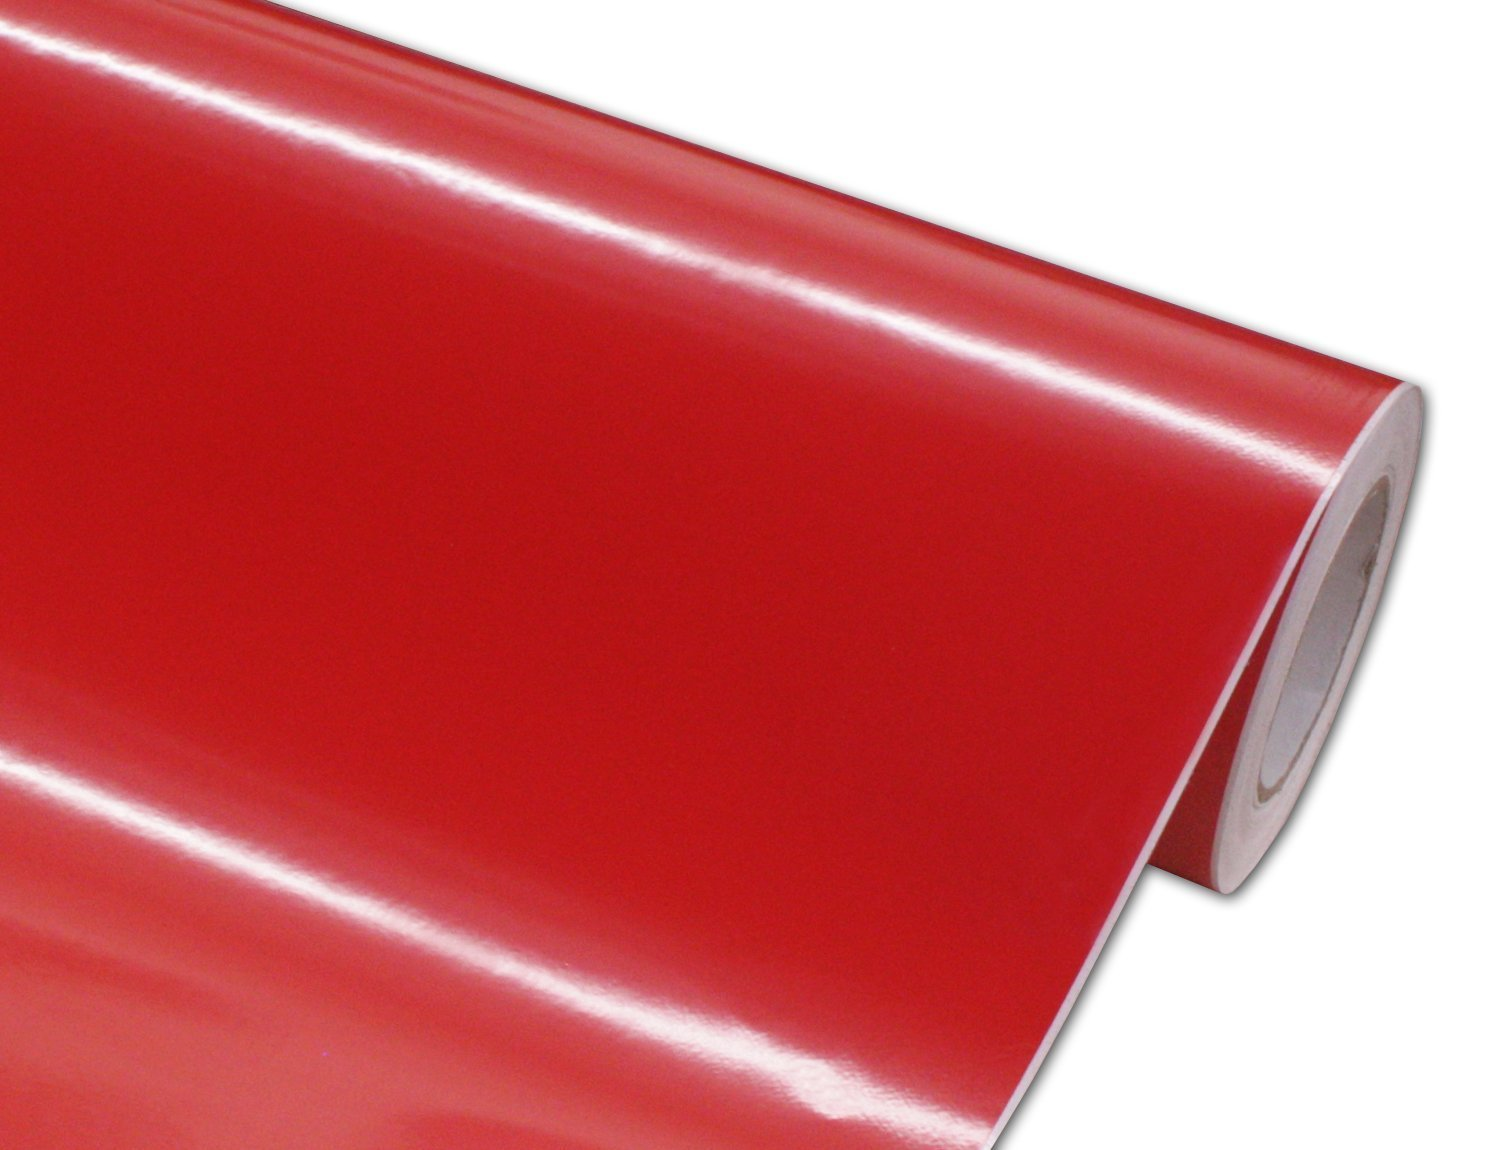 Cheap Gloss Red Car Wrap, find Gloss Red Car Wrap deals on